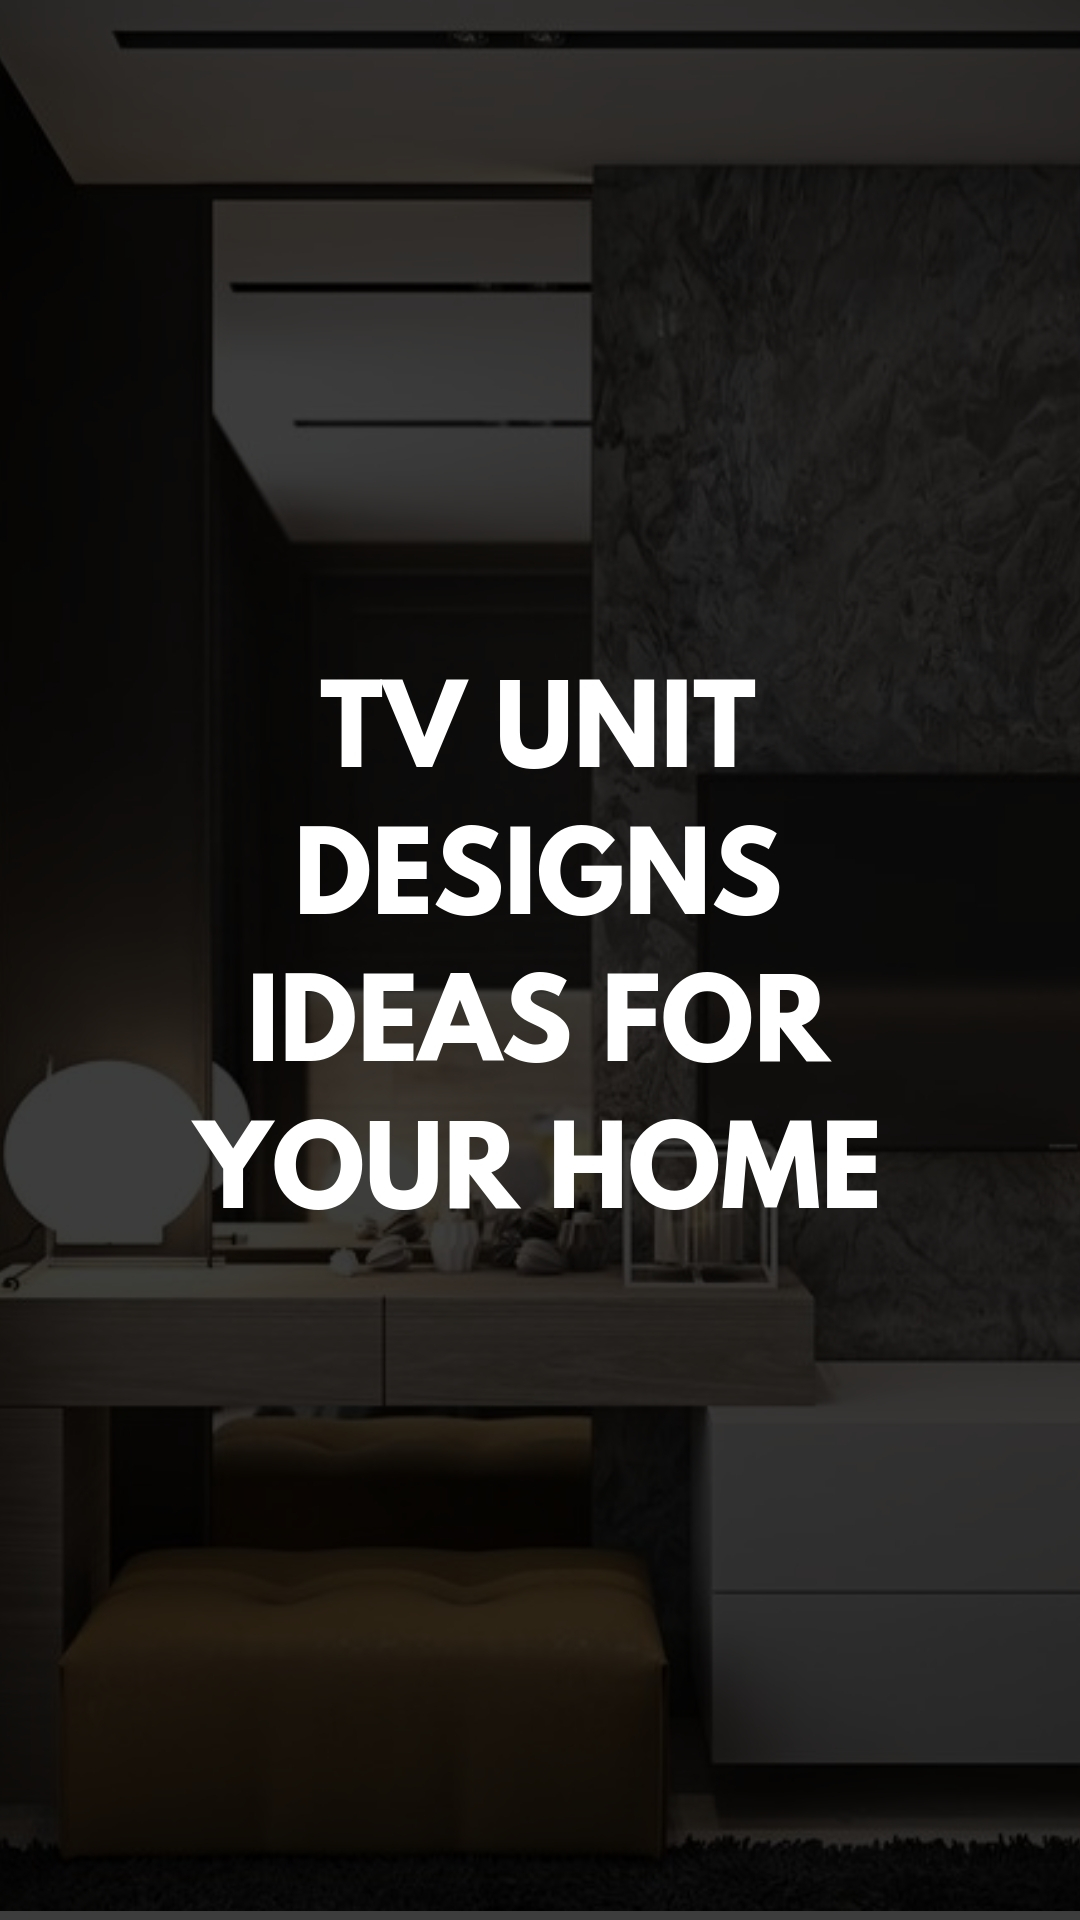 TV UNIT DESIGNS IDEAS FOR YOUR HOME.jpg